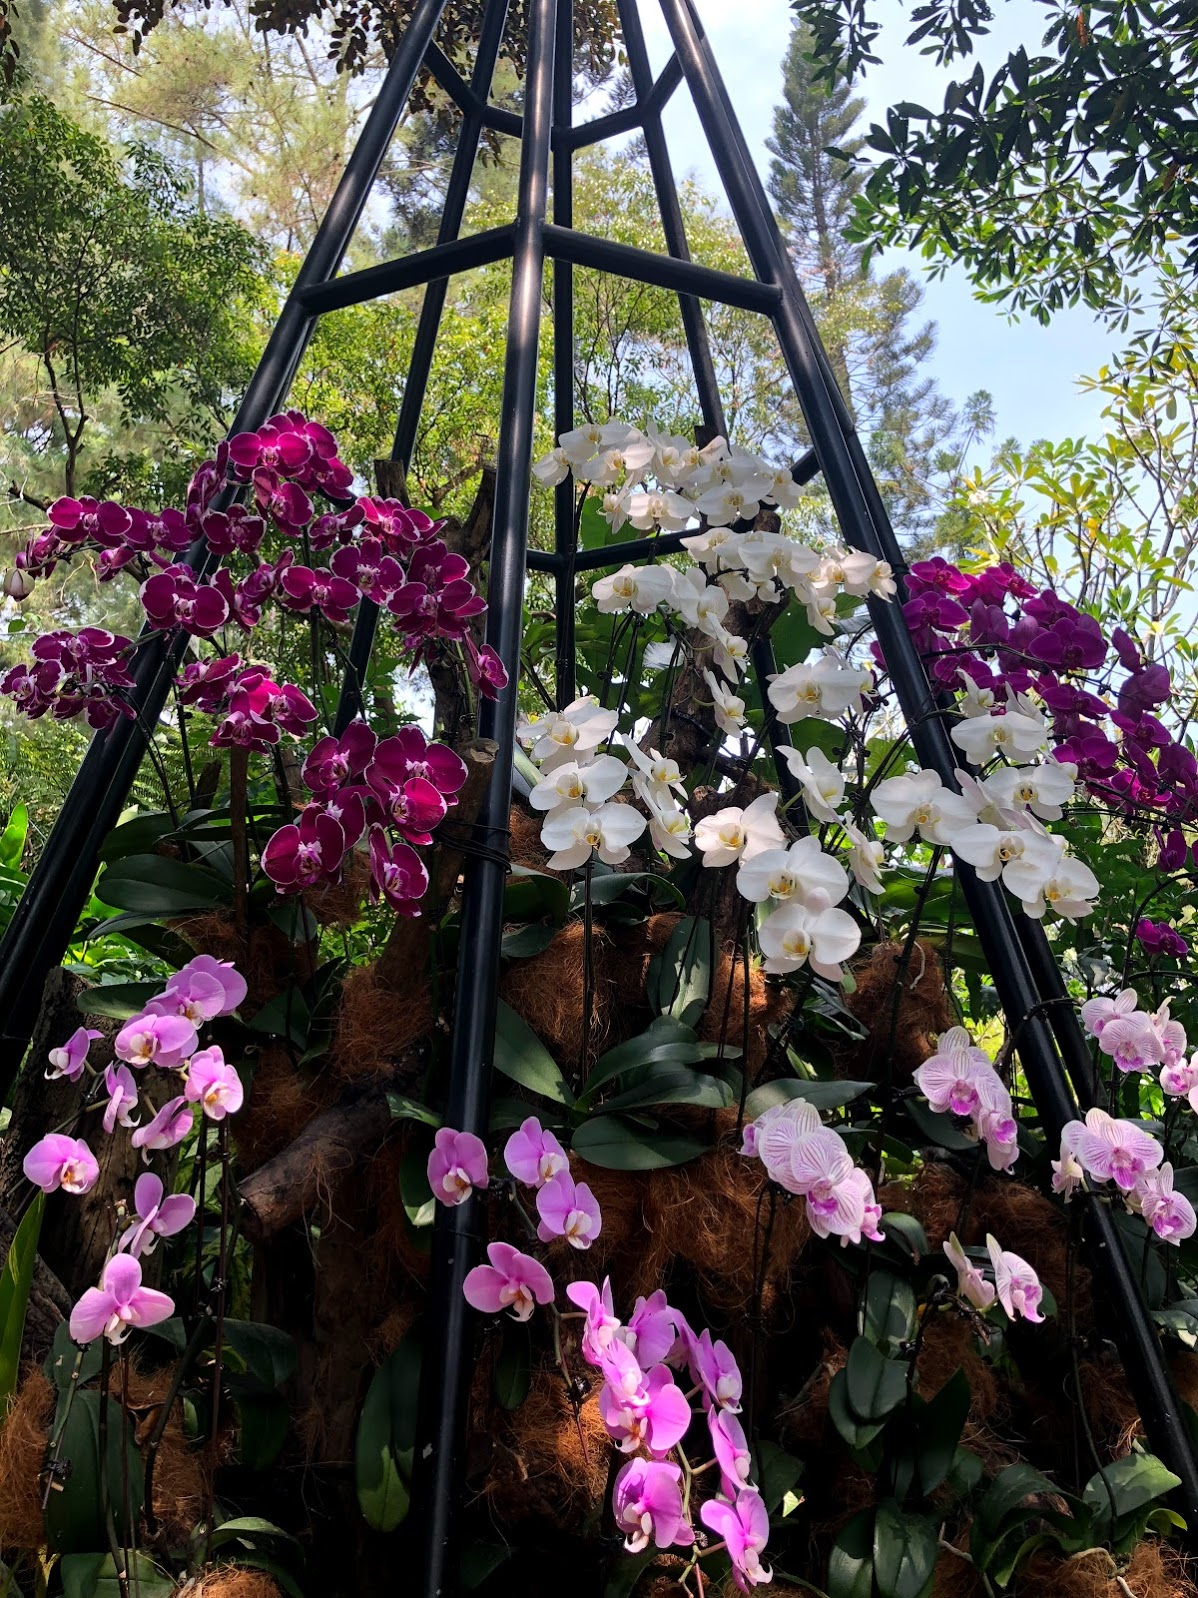 Such beautiful orchids!